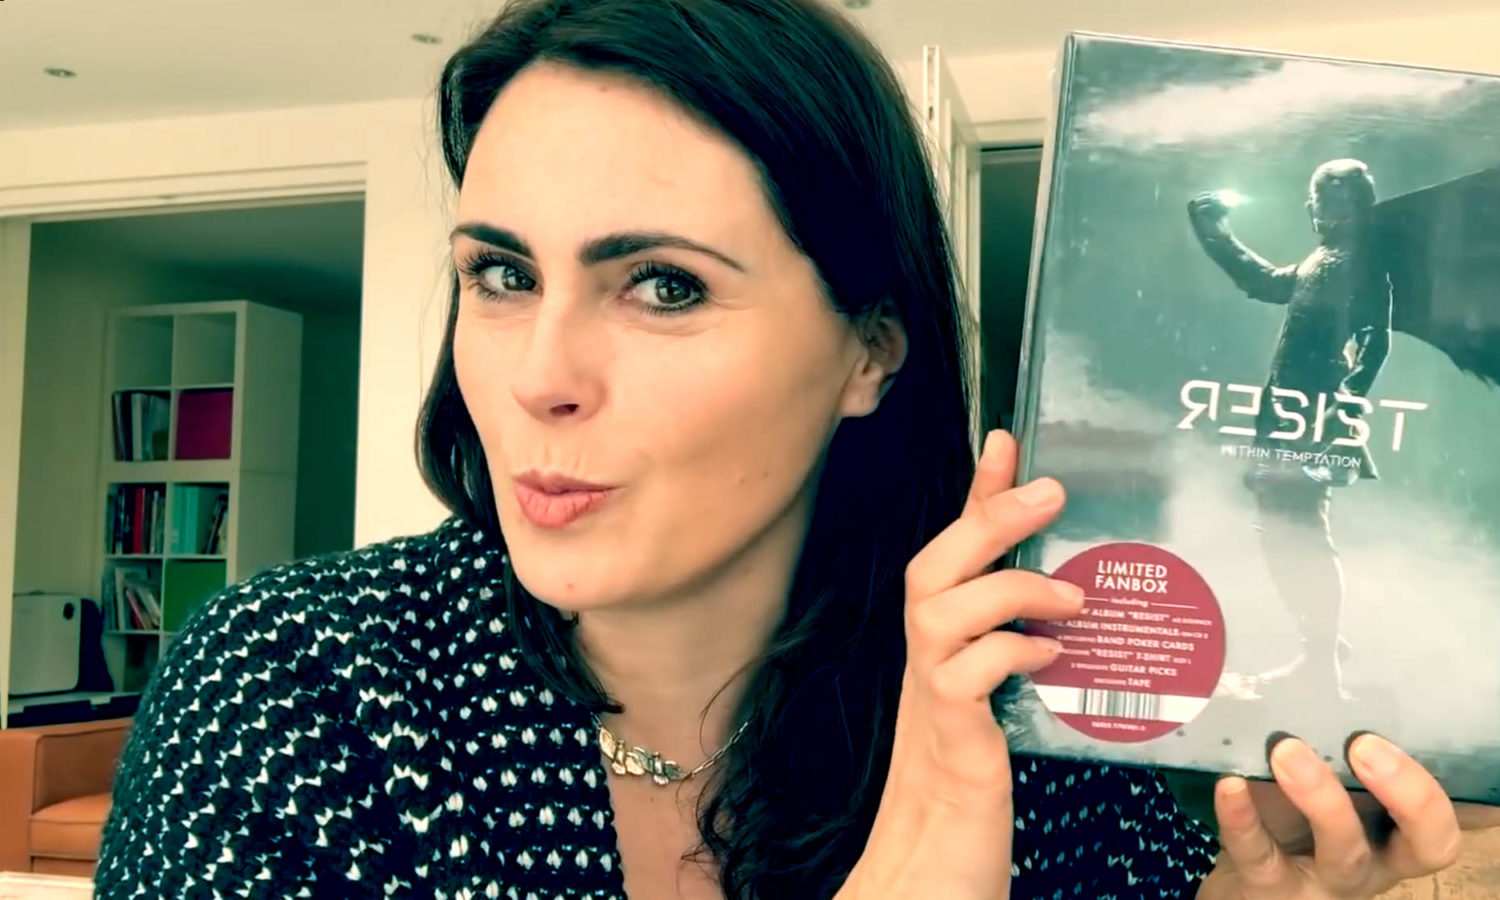 Sharon den Adel unboxing RESIST album